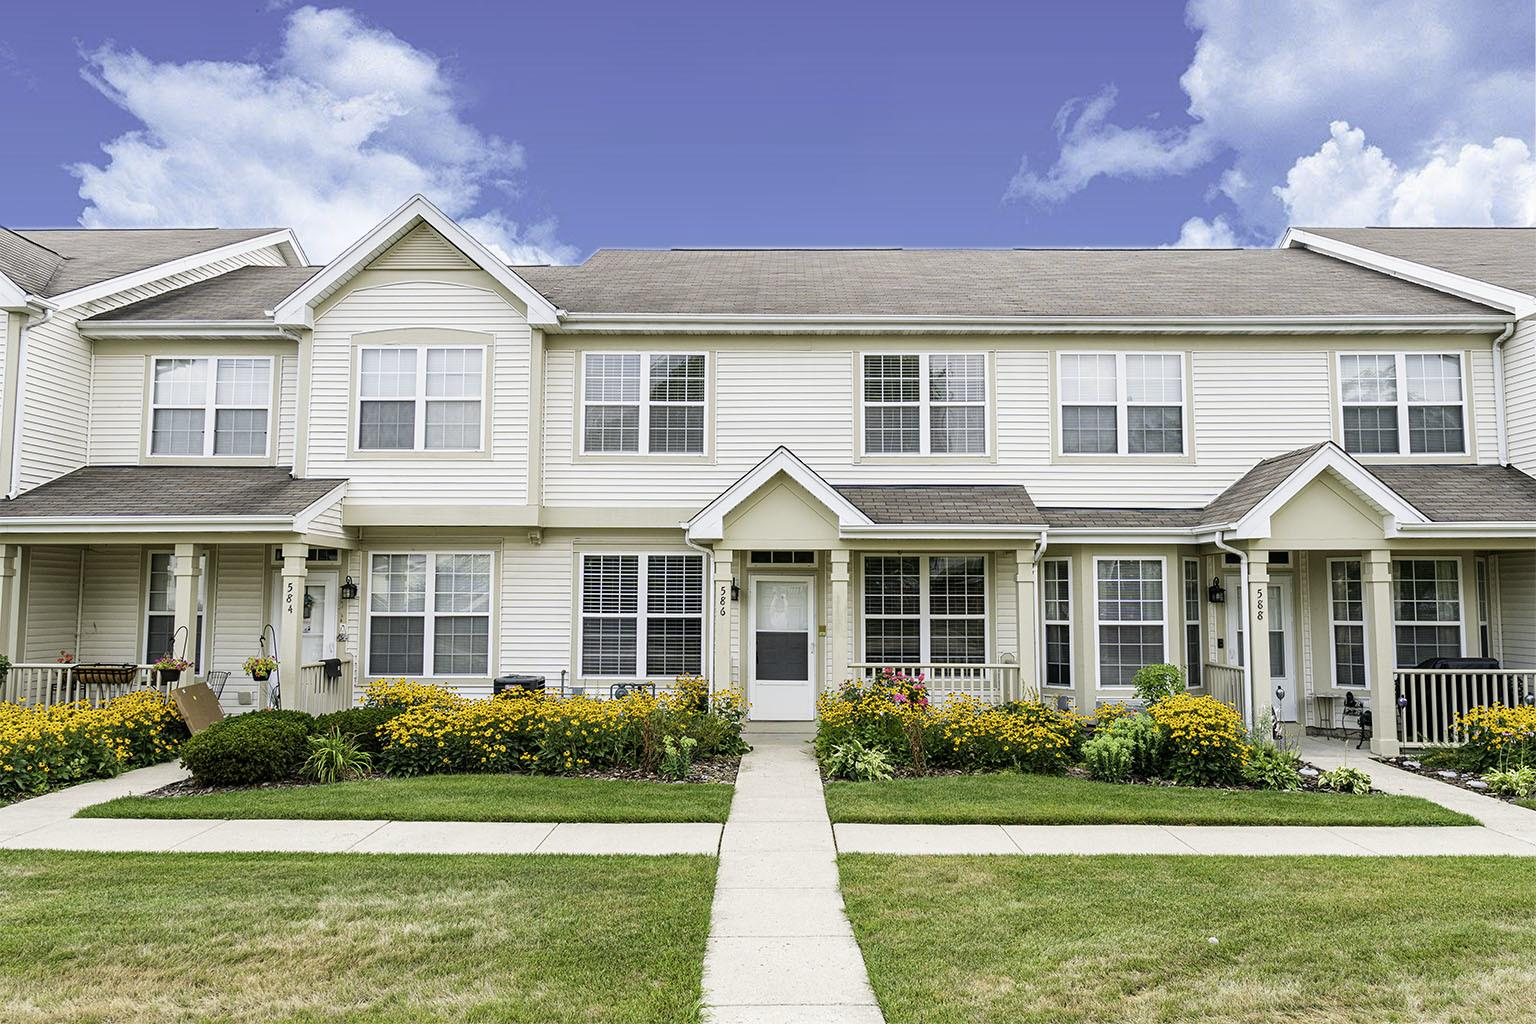 586 Bridle Court, Lakemoor, IL 60051 - #: 11172008